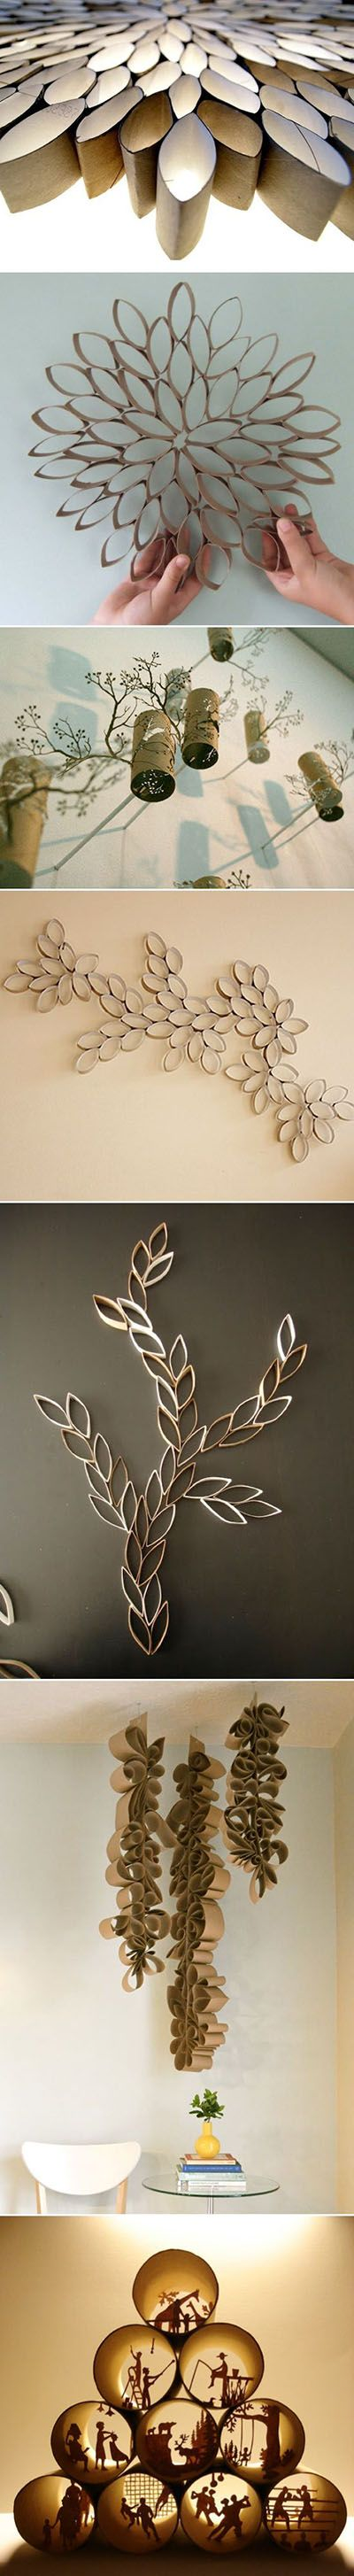 3 Toilet Paper Roll Craftingacf9434 | DIY